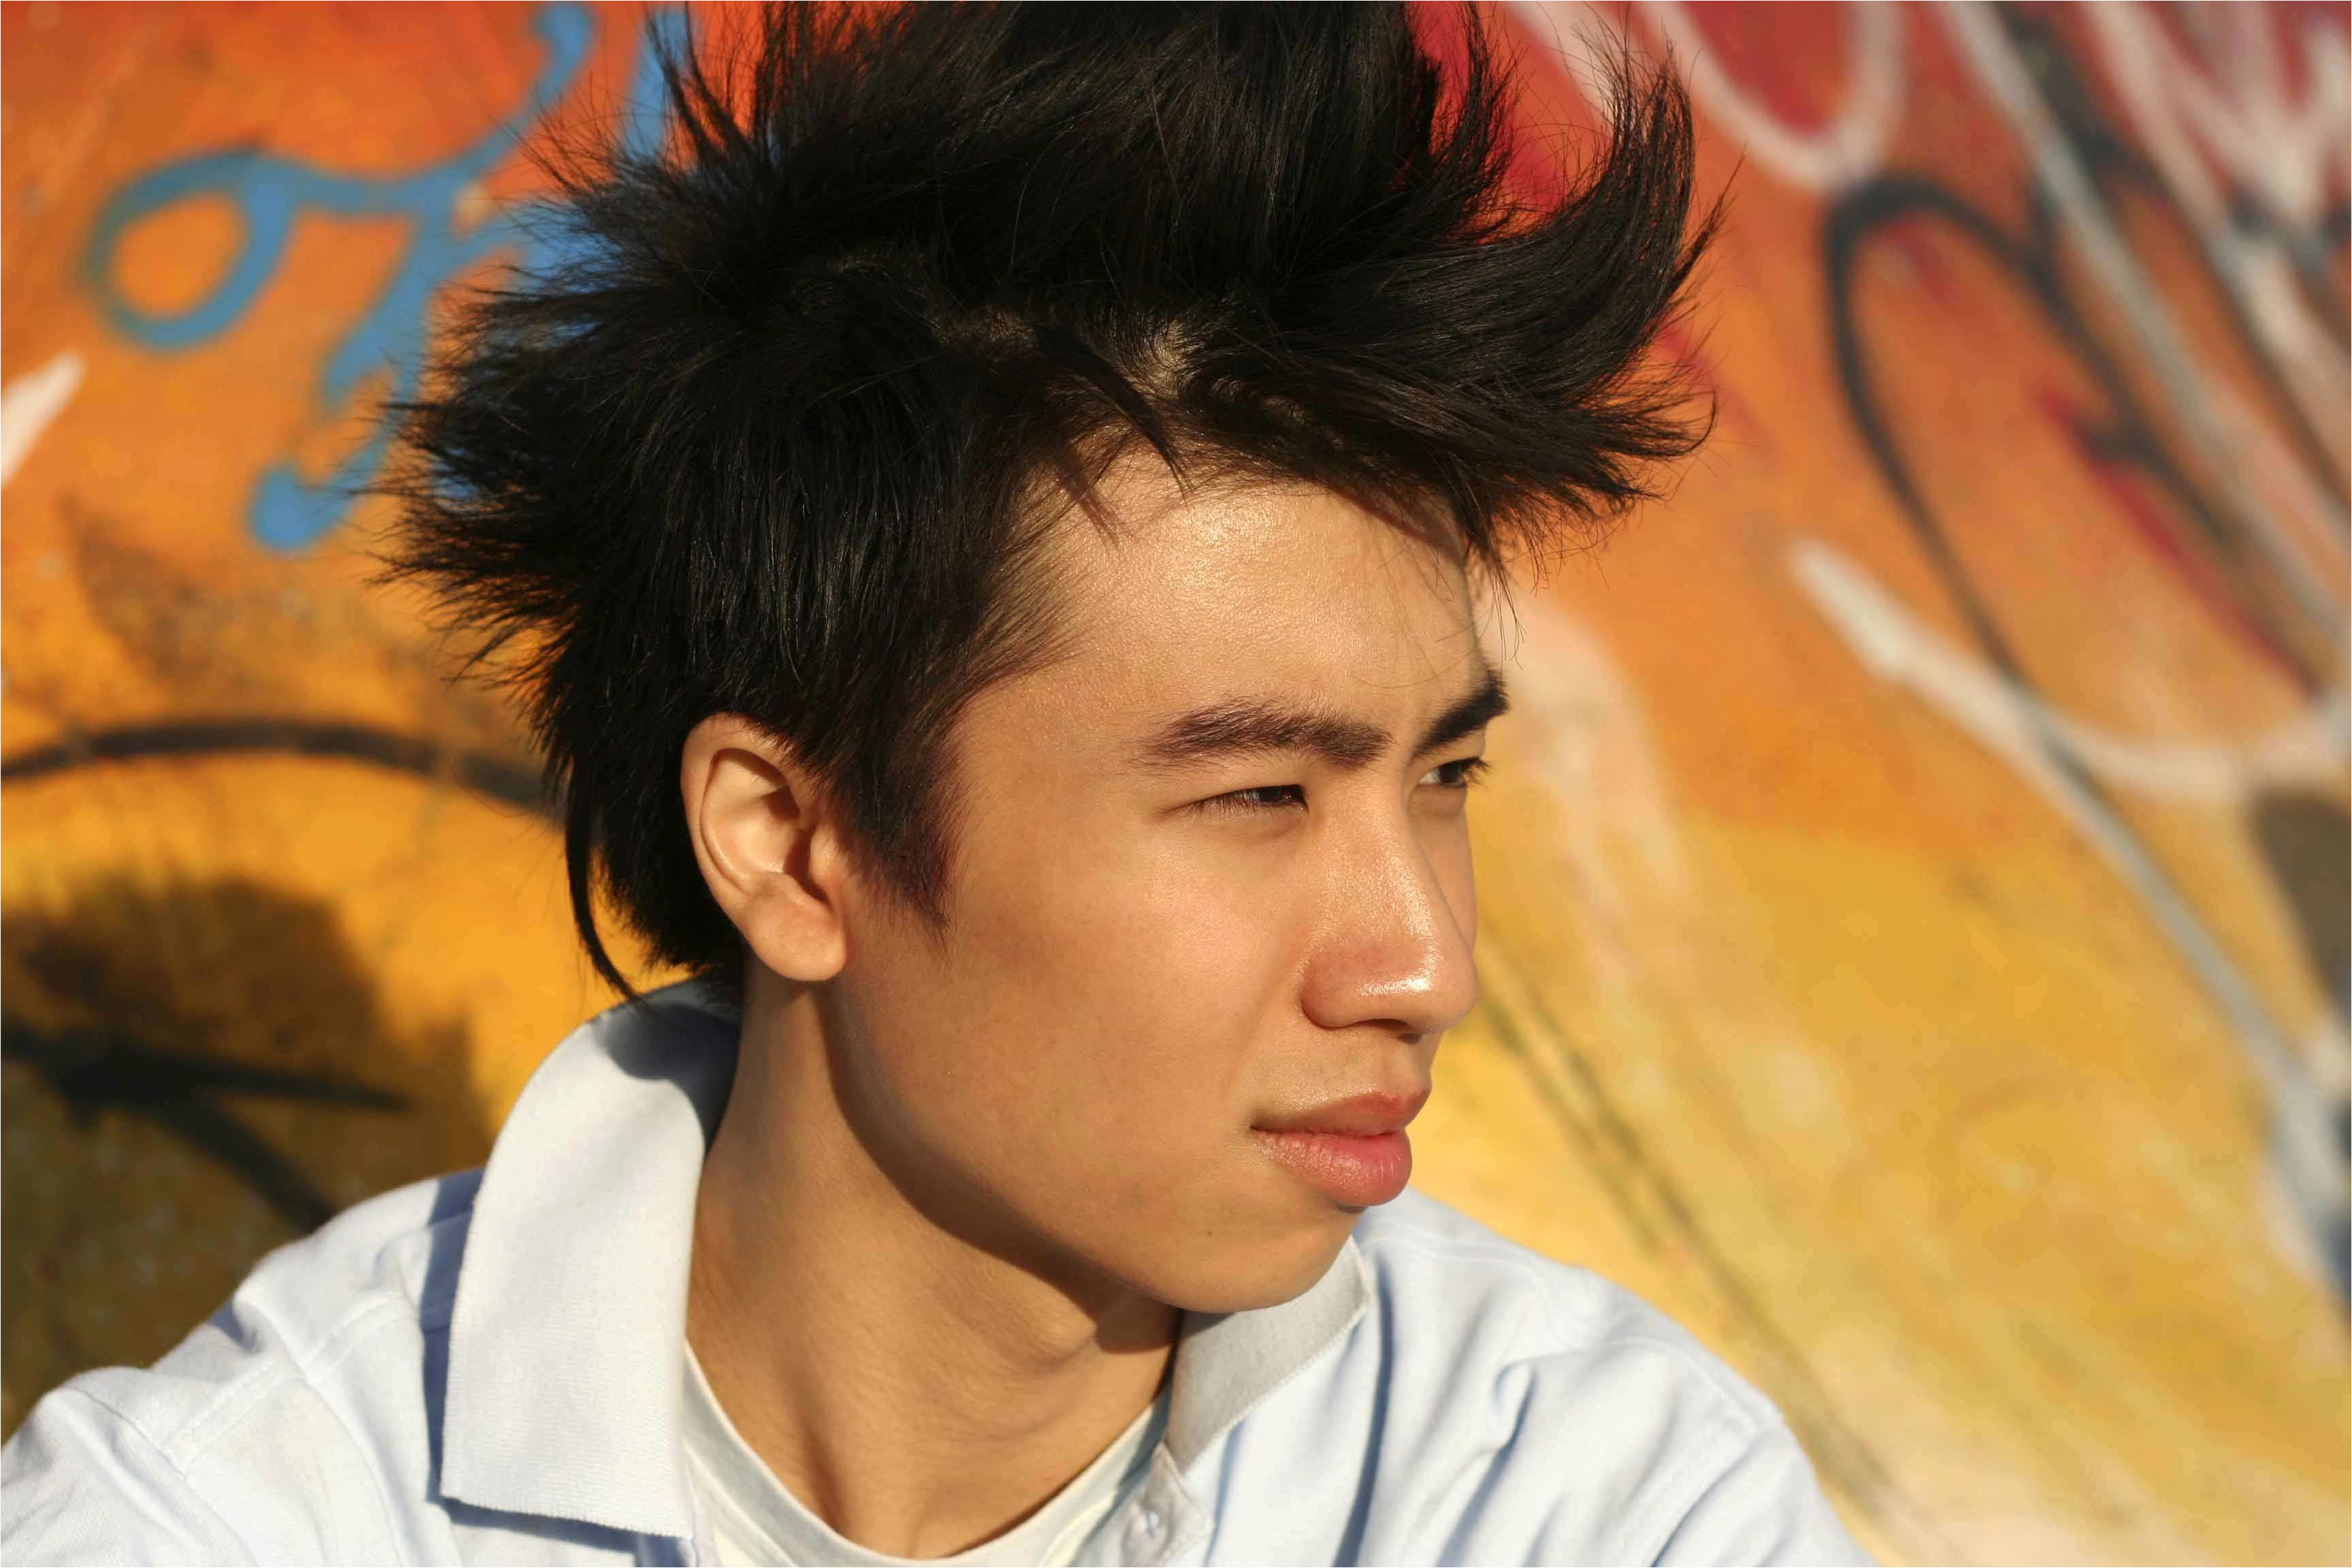 Asian Men Hair Styles Elegant Undercut Hairstyle Asian Beautiful My Kind Man S Haircut Haircut